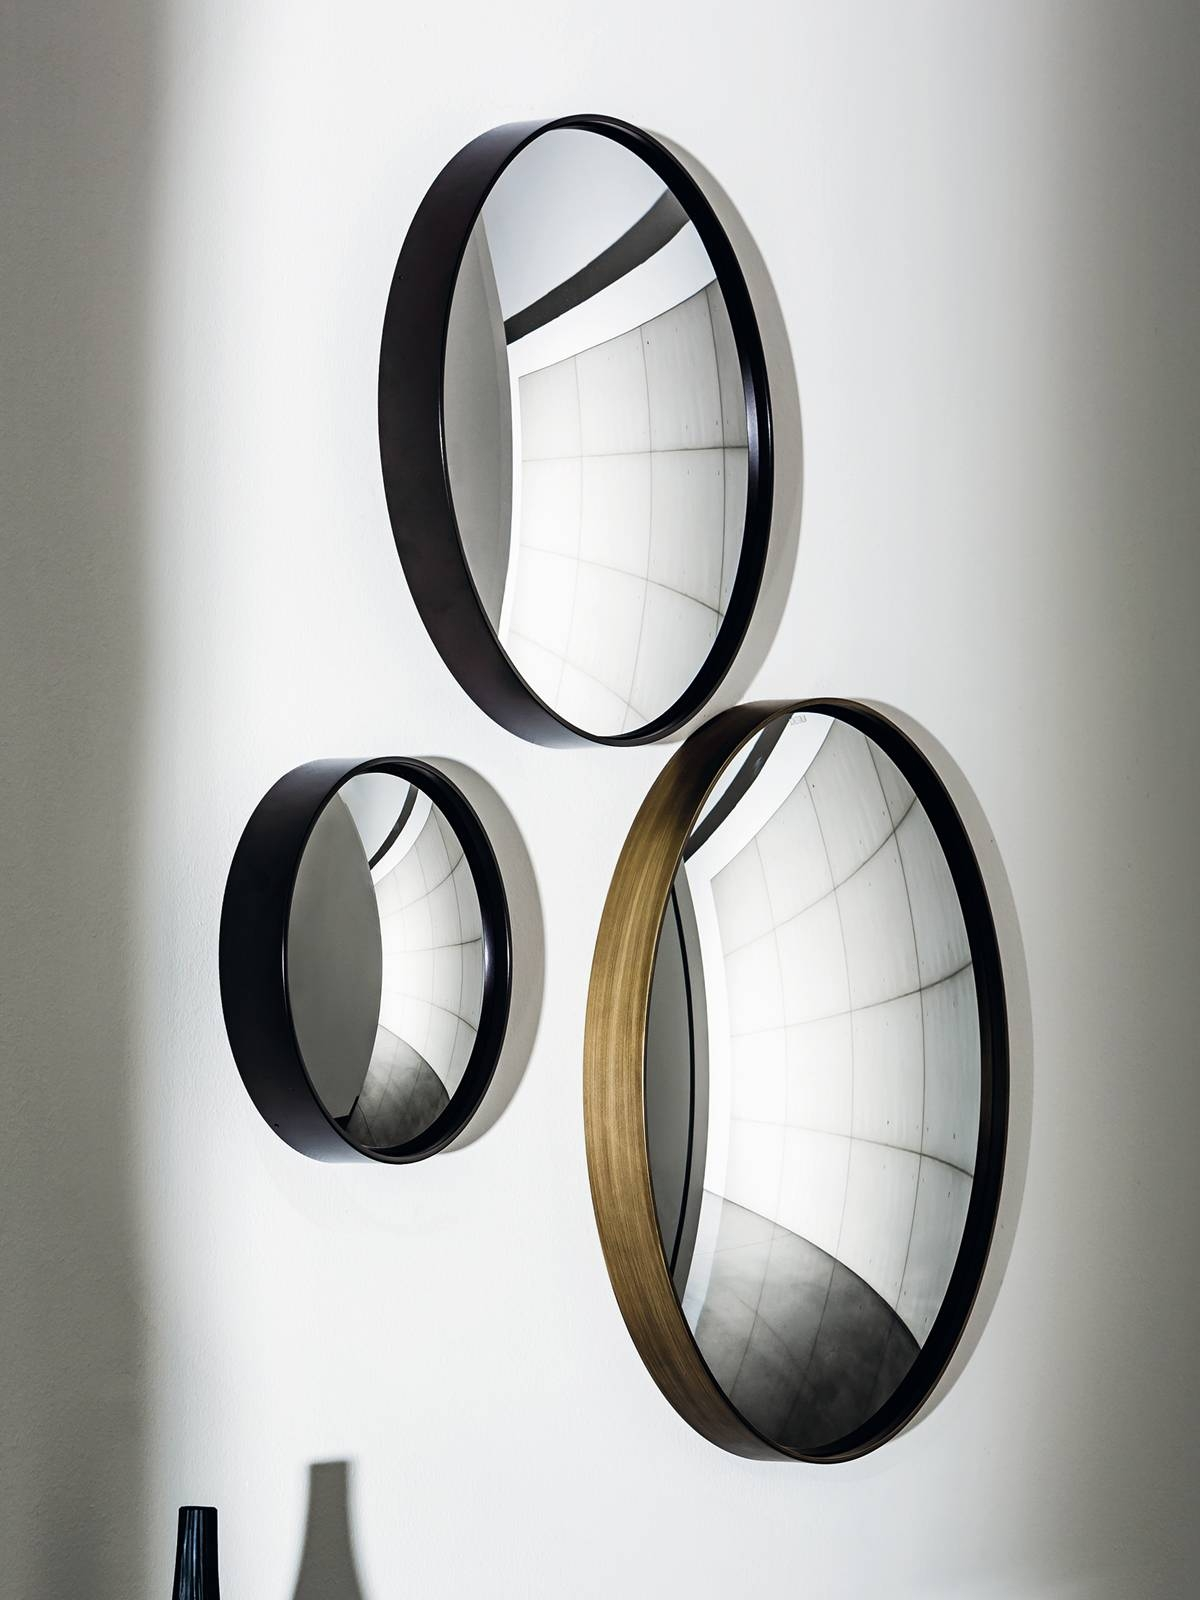 Sail - Decorative Convex Mirror - Small Unique Wall Mounted Mirror. intended for Convex Decorative Mirrors (Image 10 of 15)